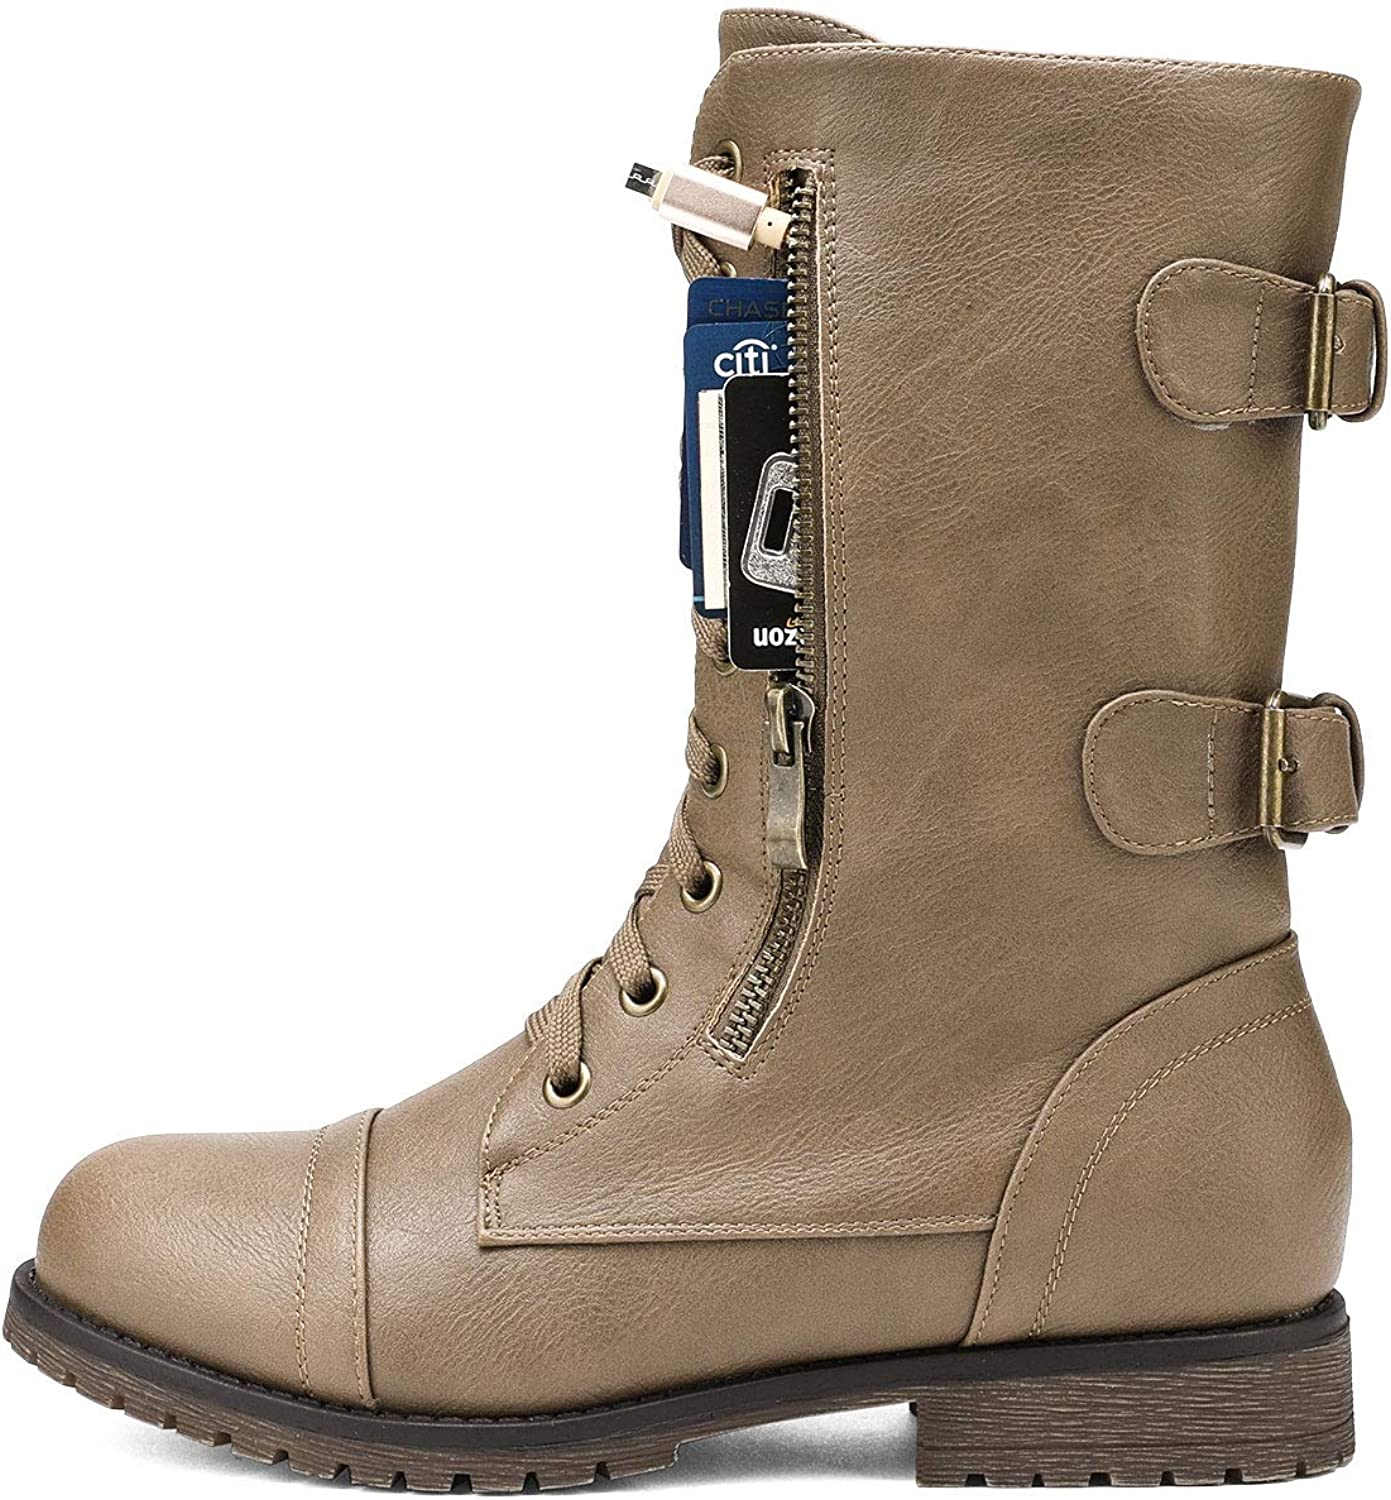 DREAM PAIRS Womens Ankle Bootie Winter Lace up Mid Calf Military Combat Boots